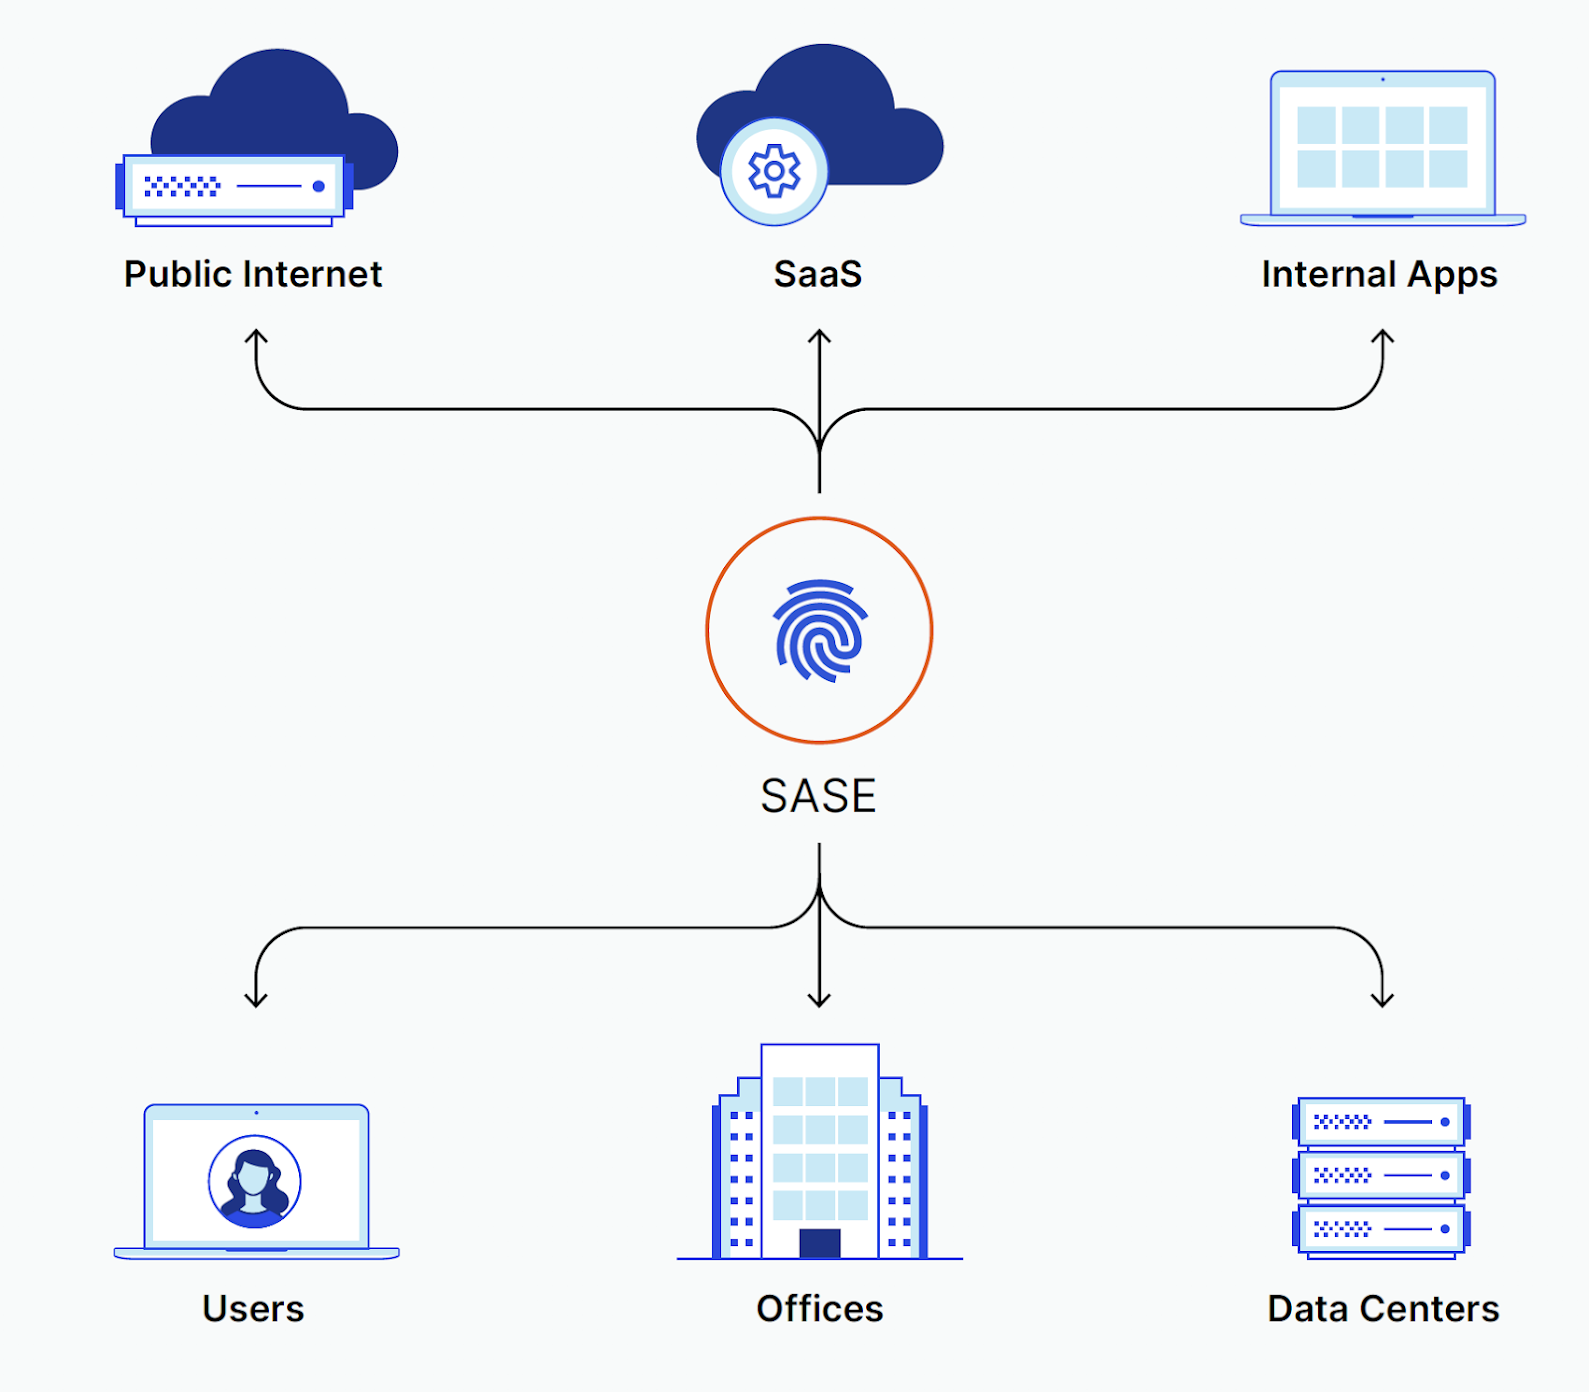 SASE converges two fundamental and separate capabilities: software-based network architecture and cloud-based security services.